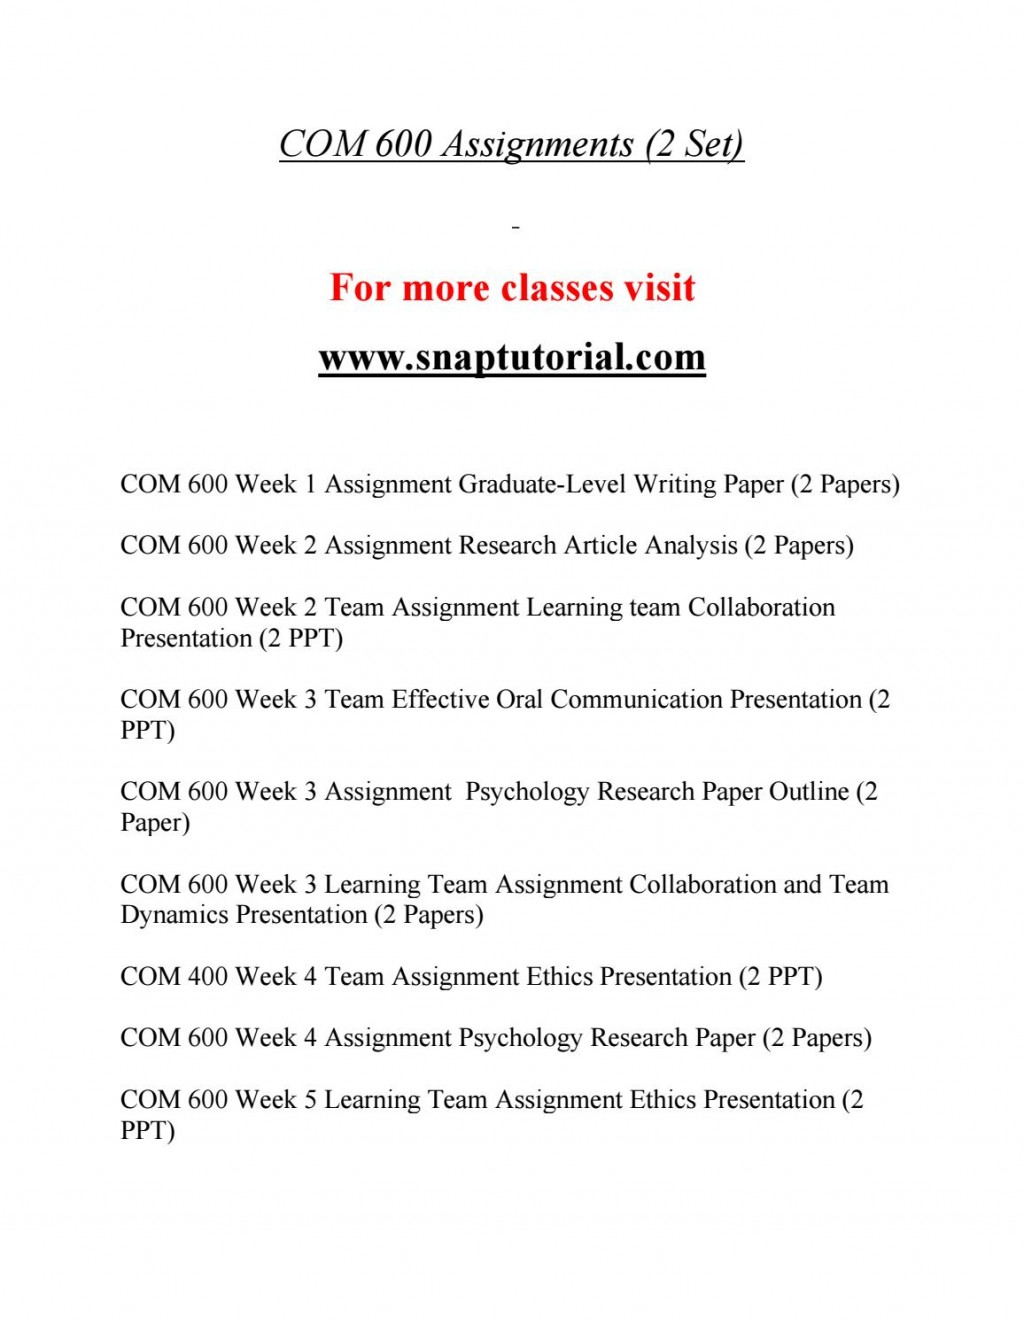 008 Psychology Research Paper Outline Com Page 1 Striking 600 Com/600 Large